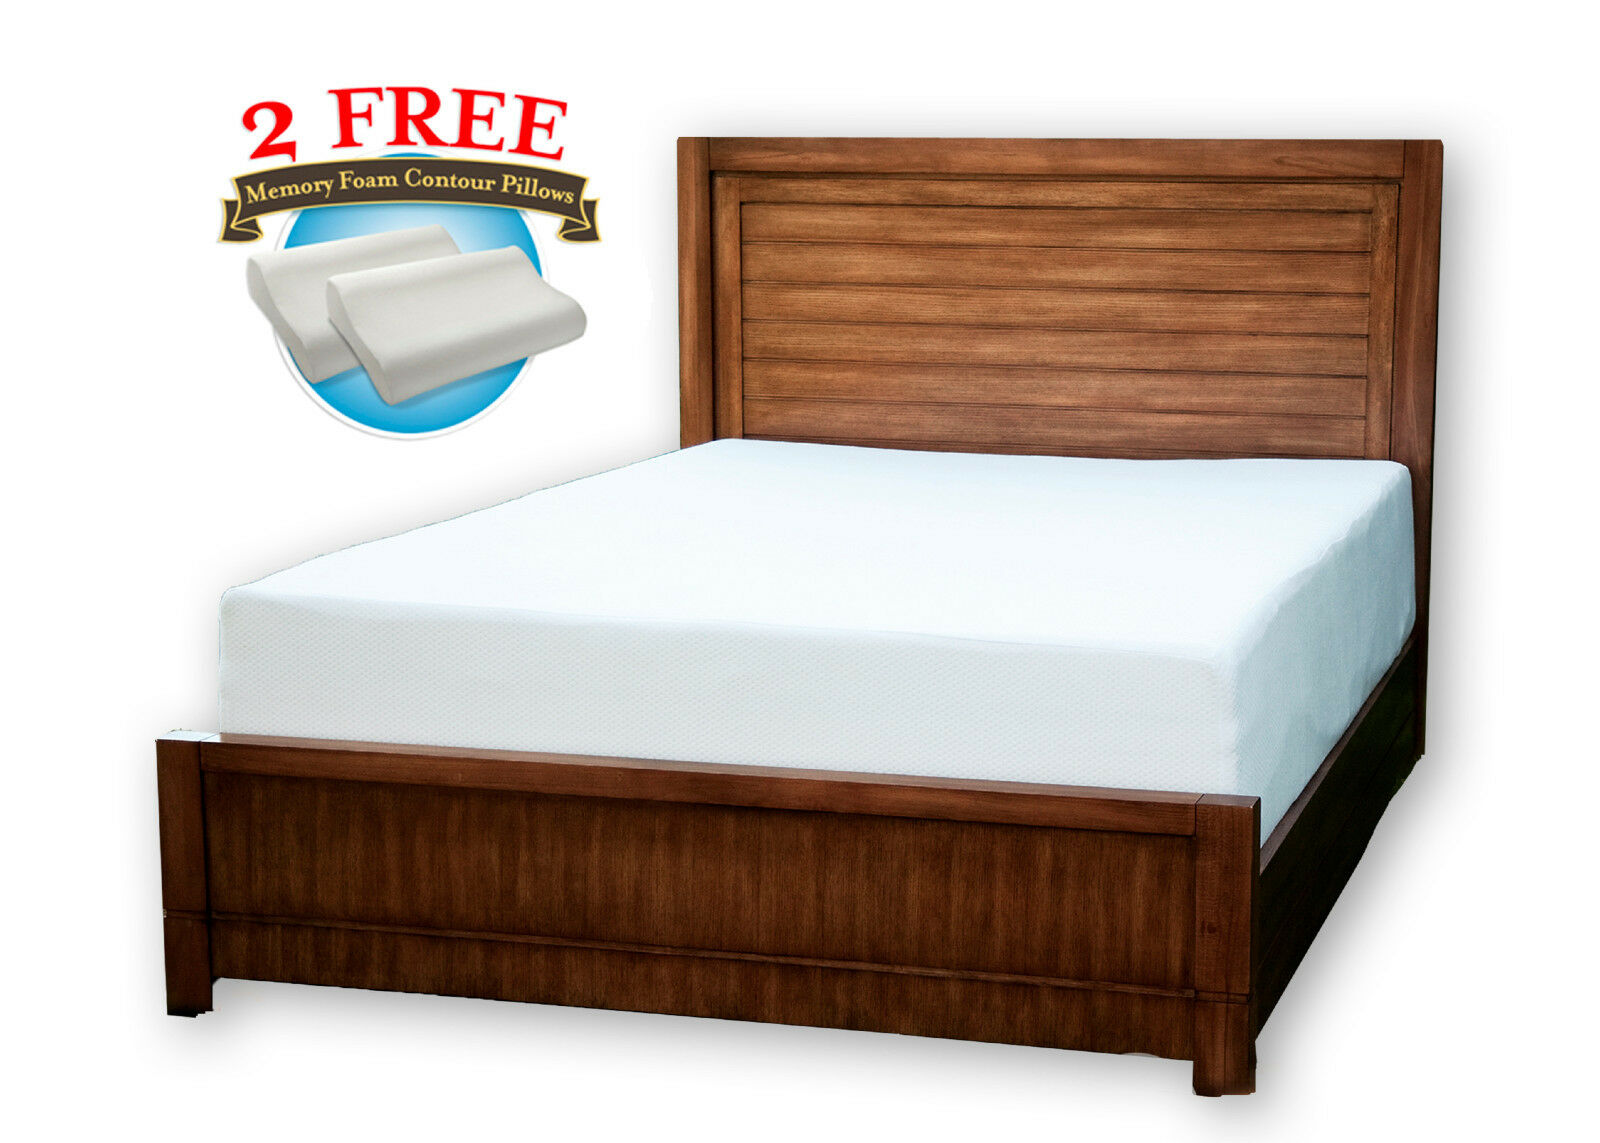 extra long twin mattress 10 inch cool medium memory foam mattress twin xl full queen king cal king